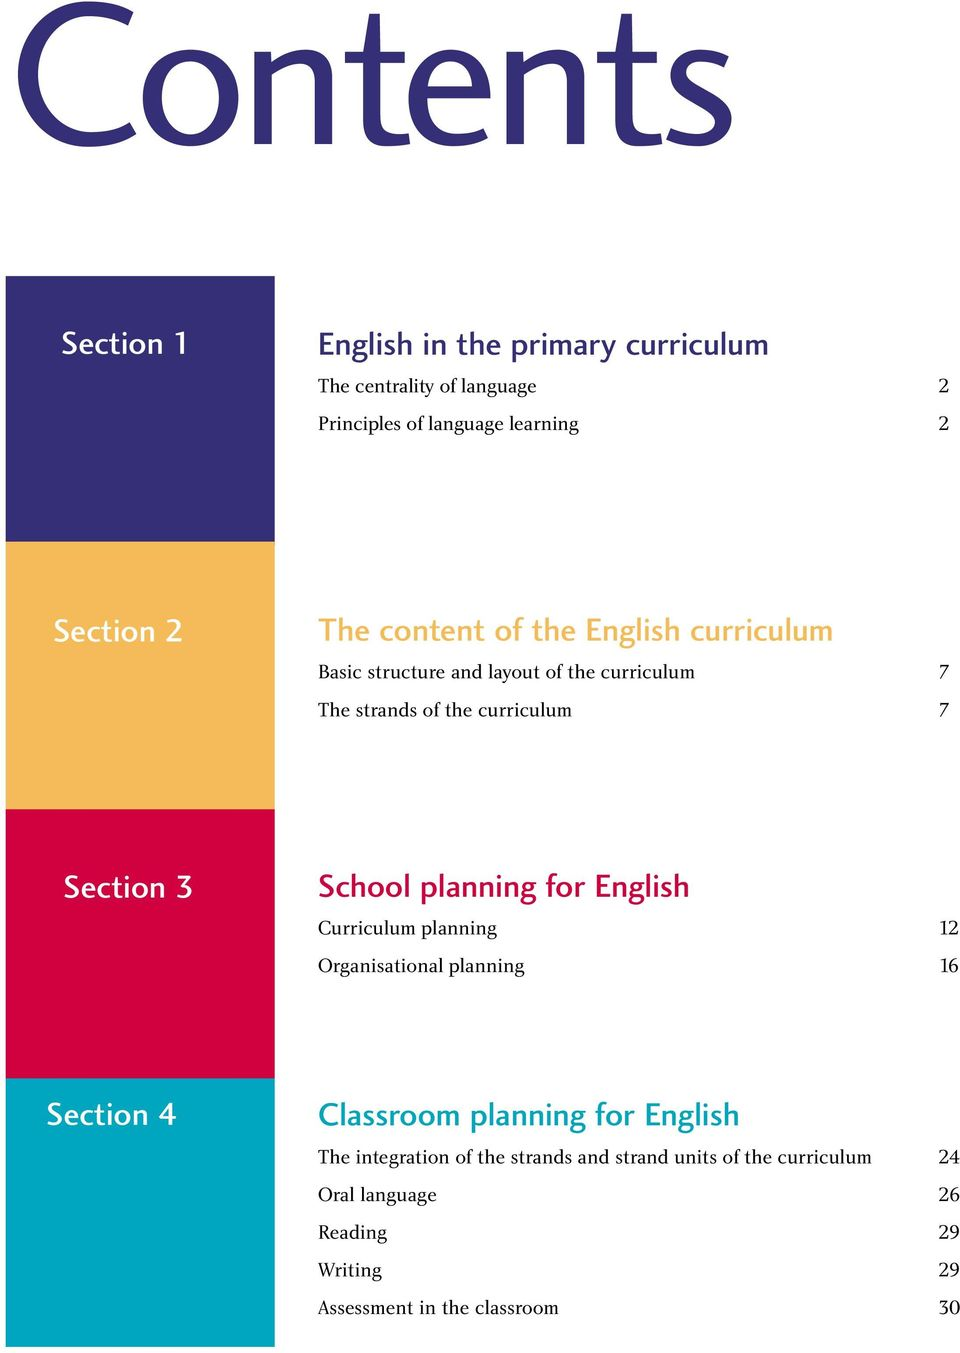 School planning for English Curriculum planning 12 Organisational planning 16 Section 4 Classroom planning for English The